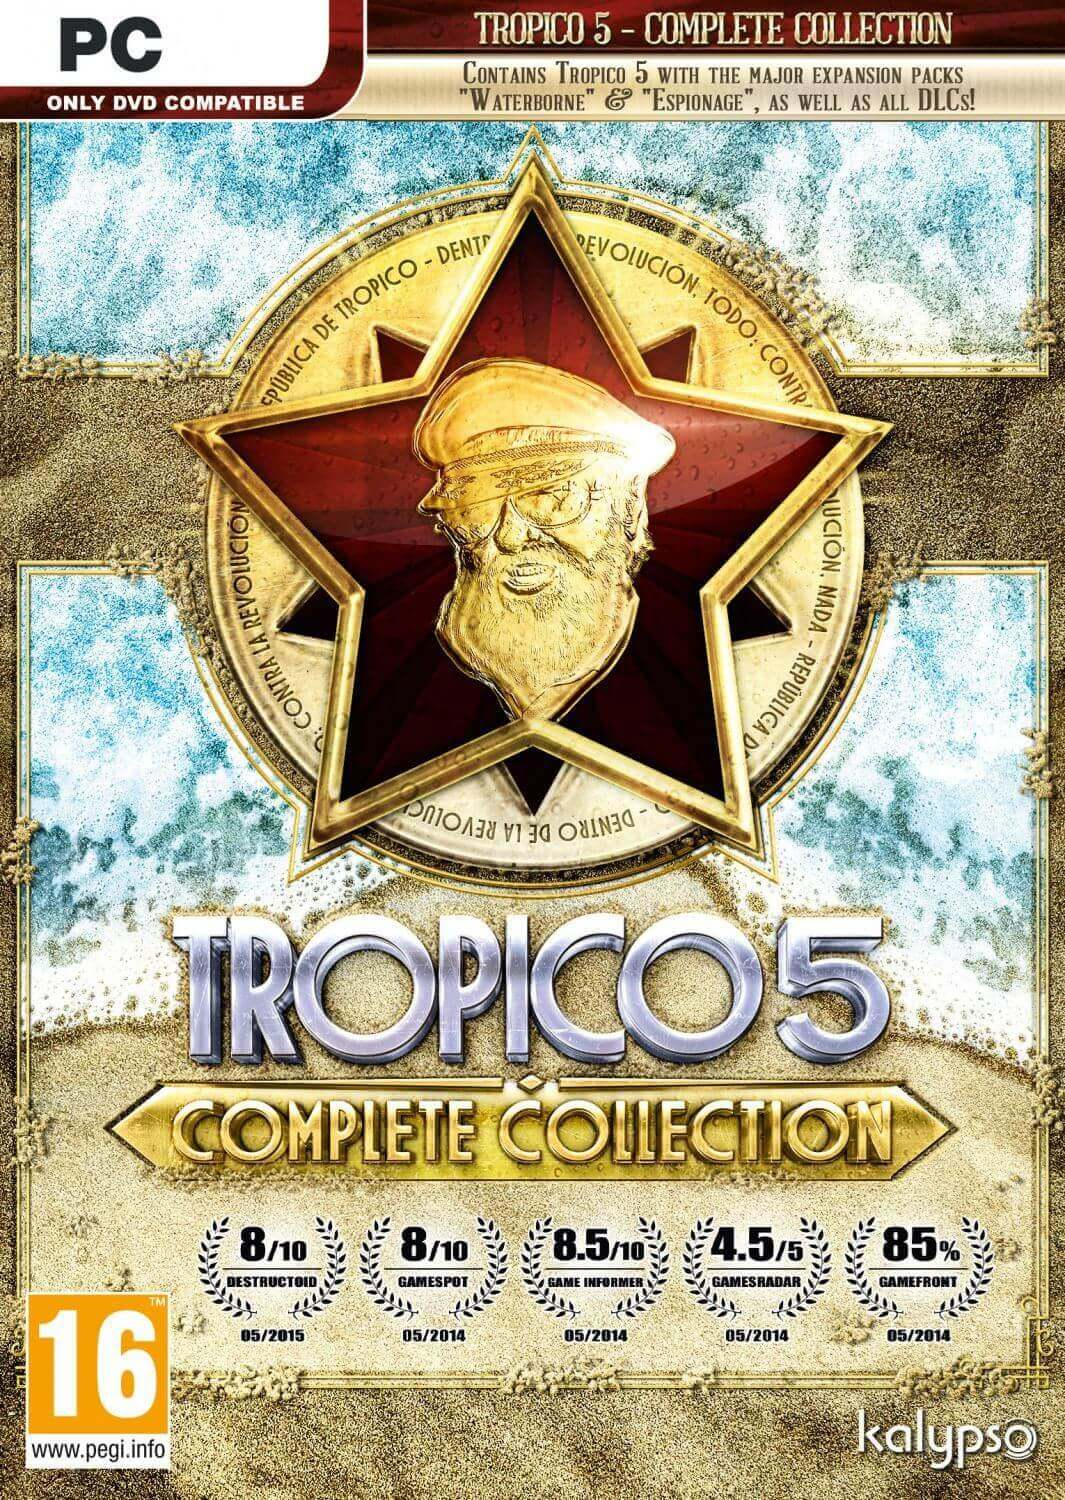 Tropico 5 – Complete Collection